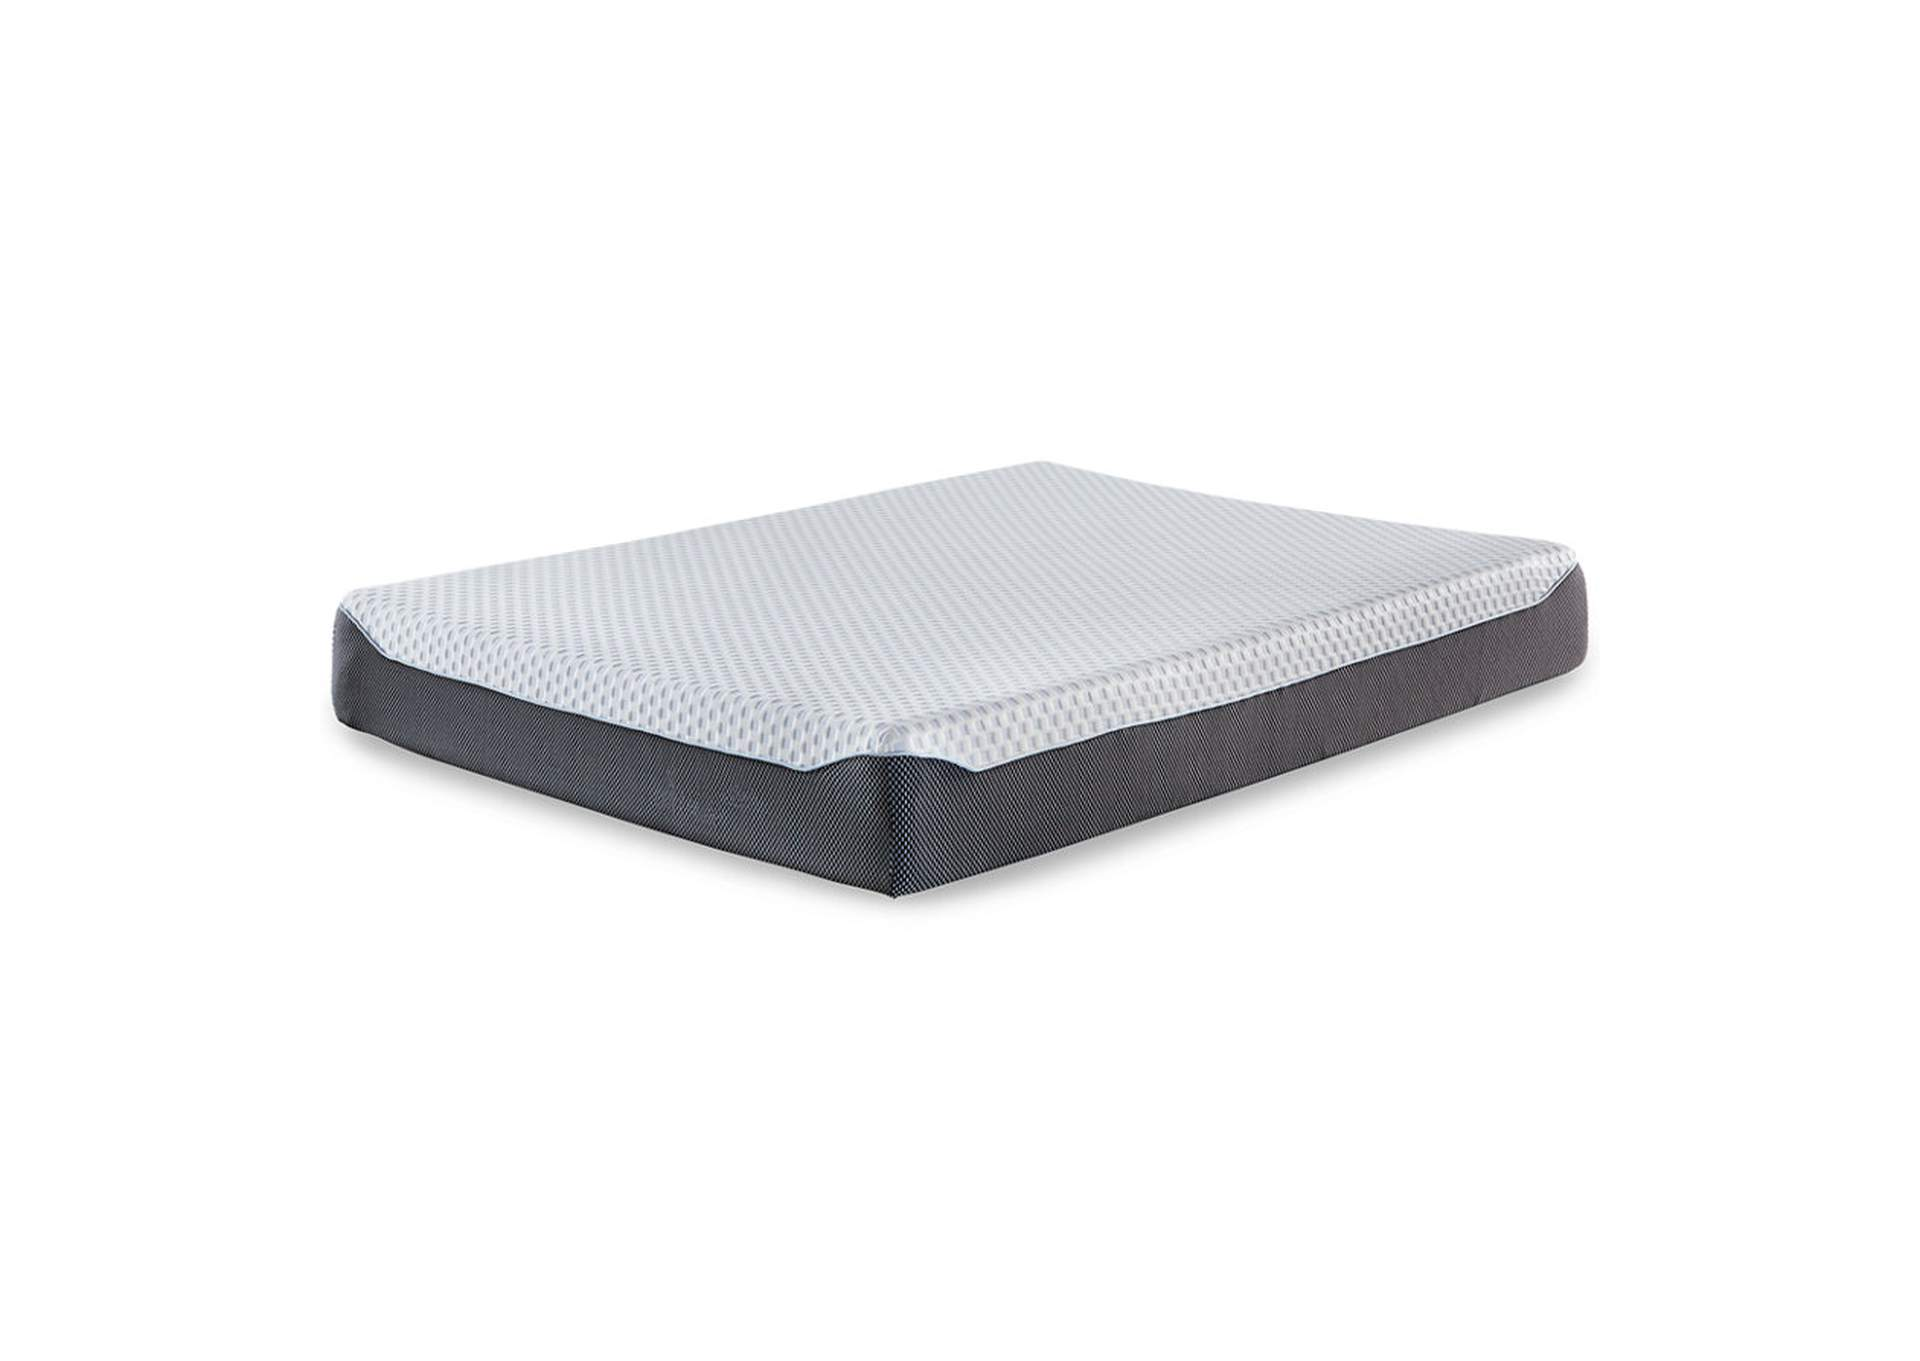 Chime Elite 10 Inch Memory Foam Queen Mattress,Direct To Consumer Express